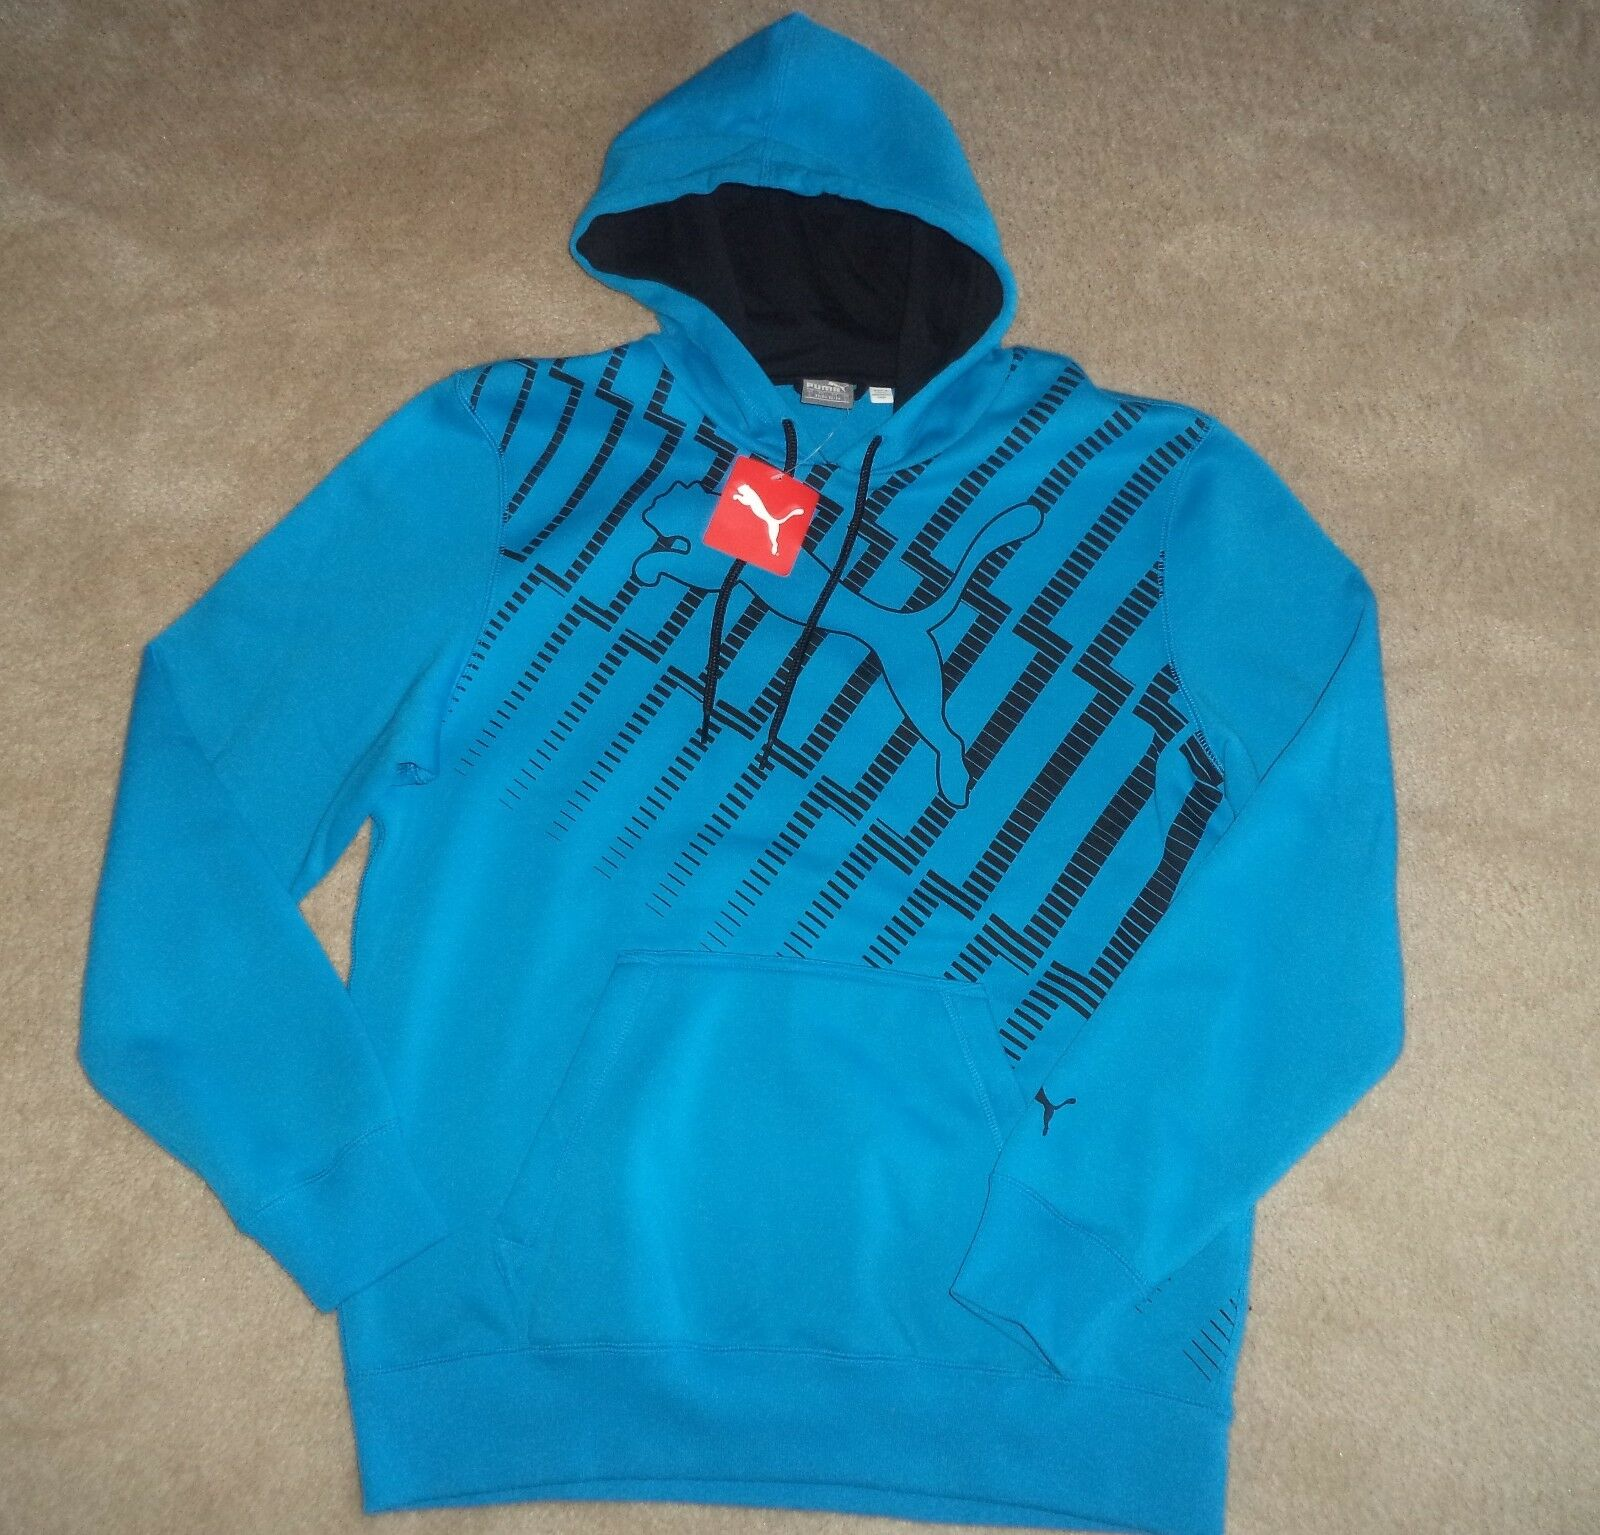 Men's Puma hoodie turquoise bluee  Large NEW